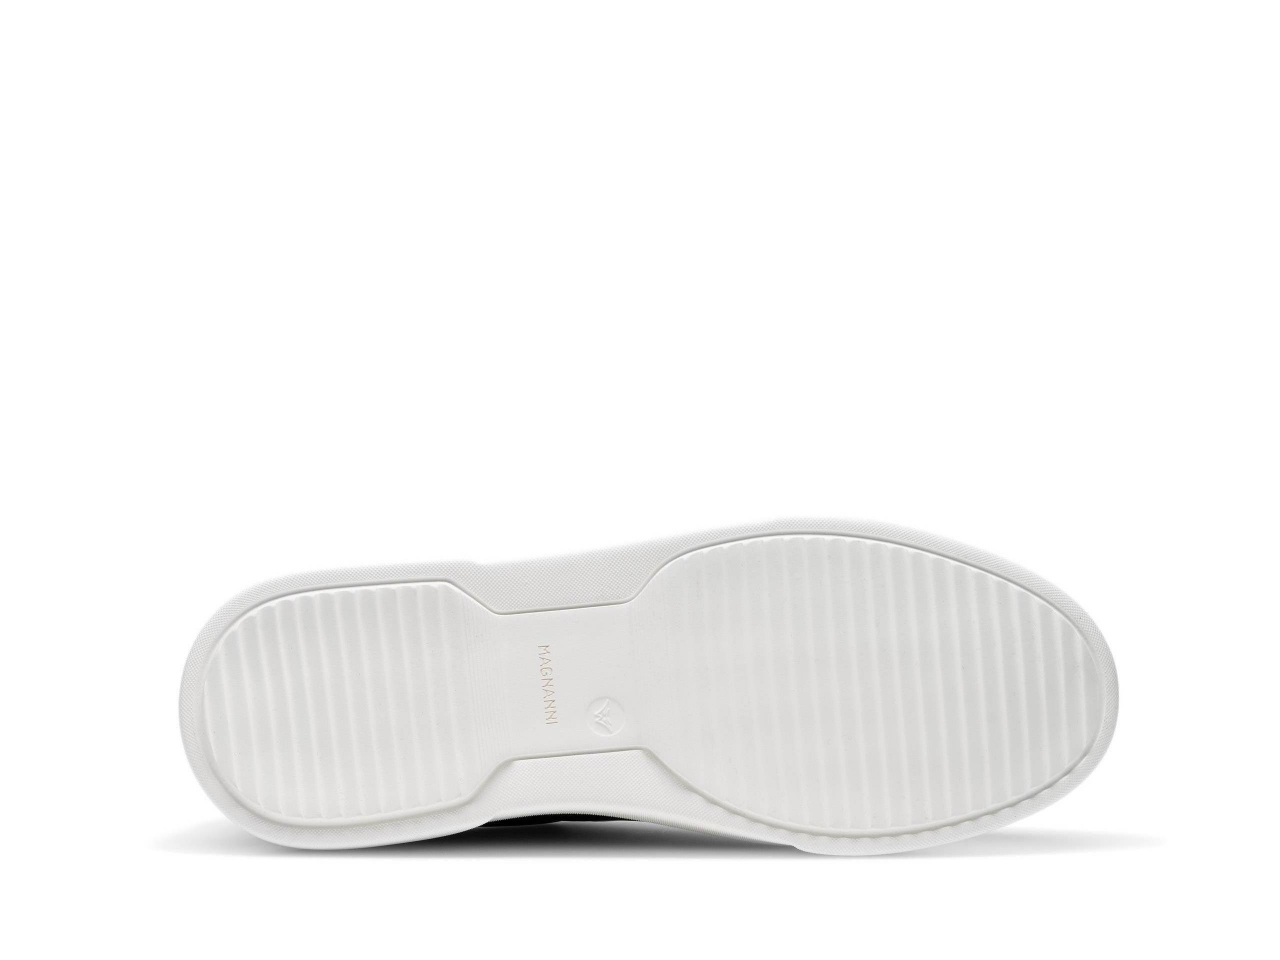 The sole of the Reina